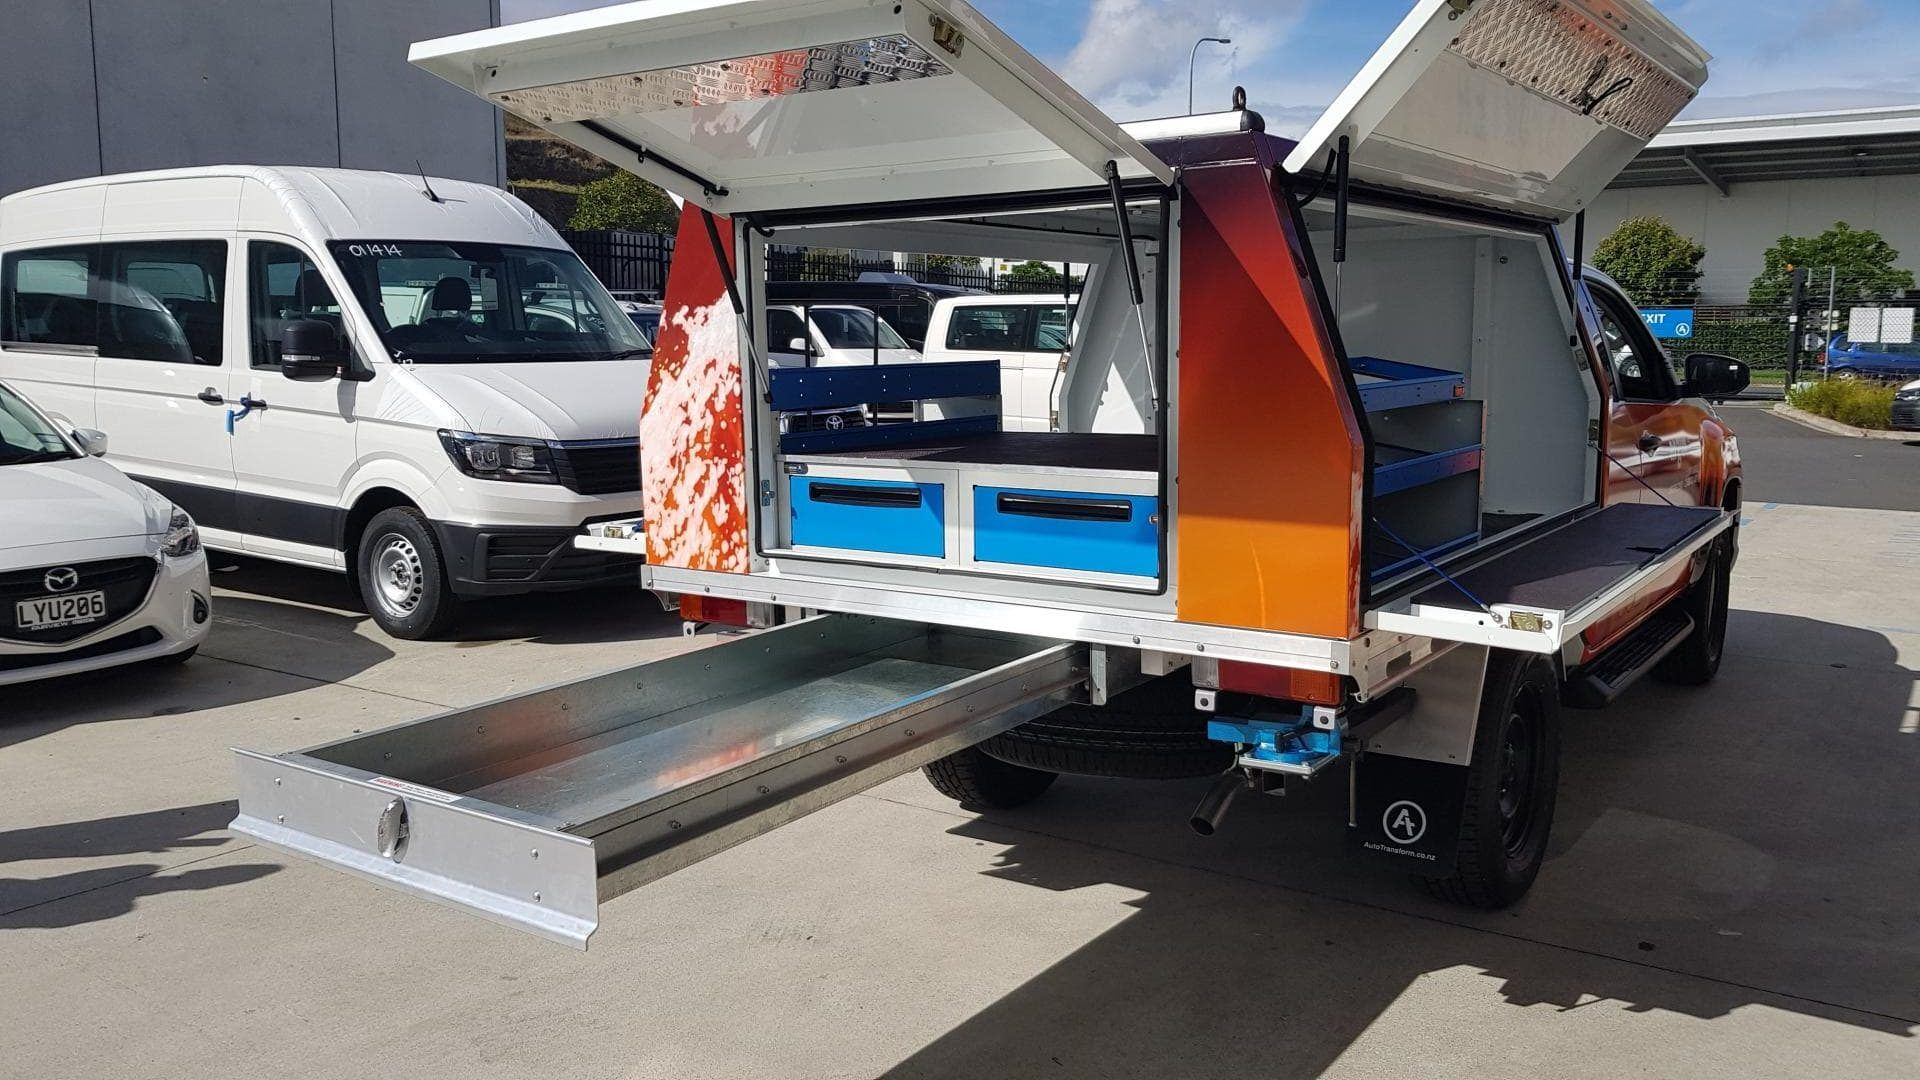 Ute service body with underfloor aluminium tray